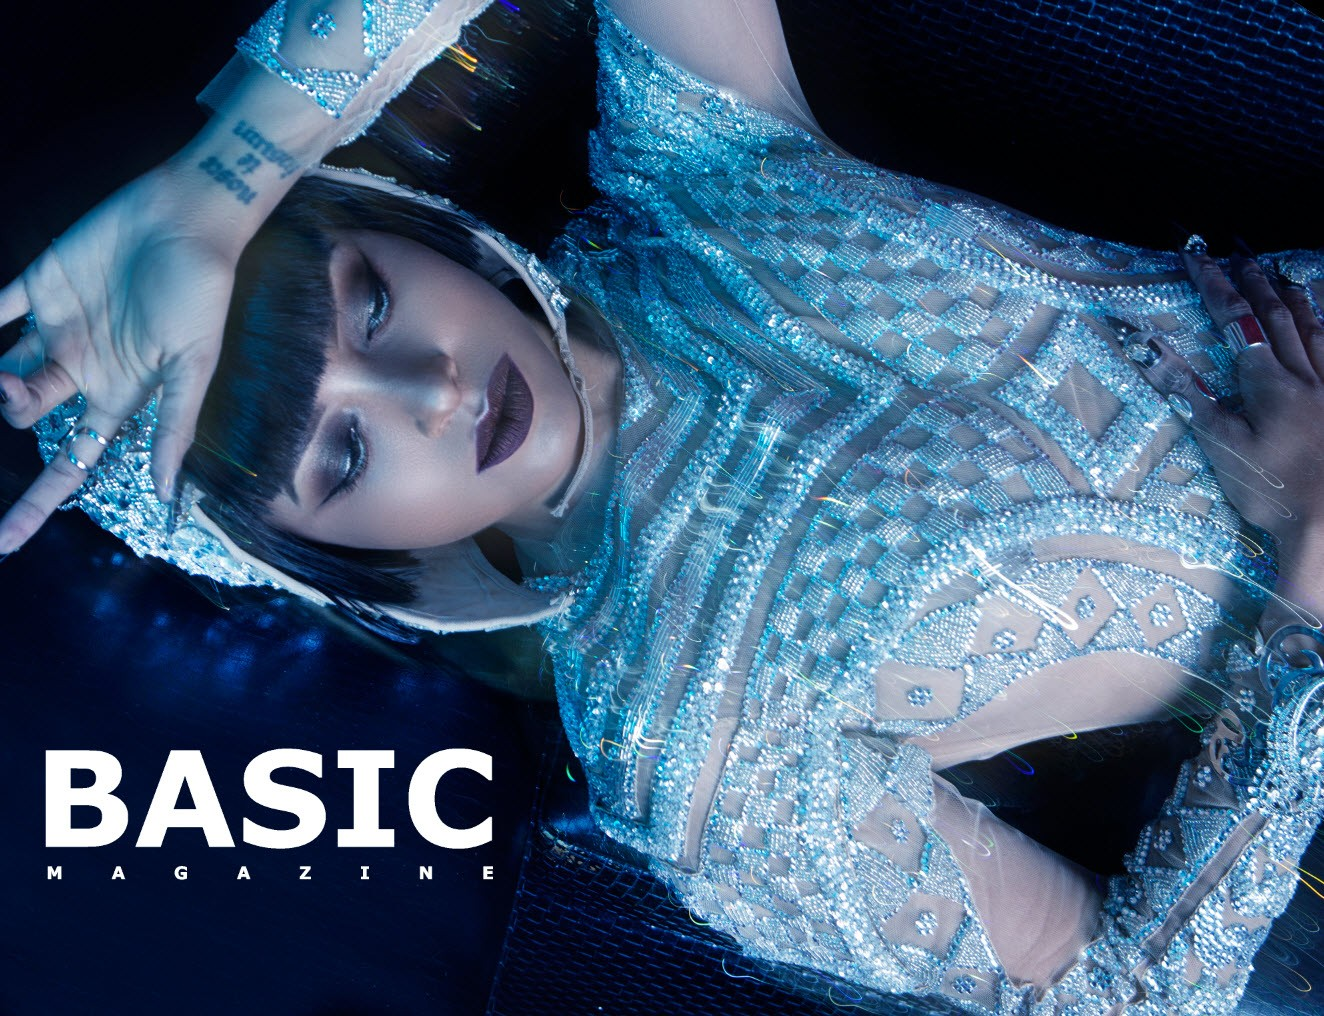 kat graham_basic magazine_instinct issue pashuta